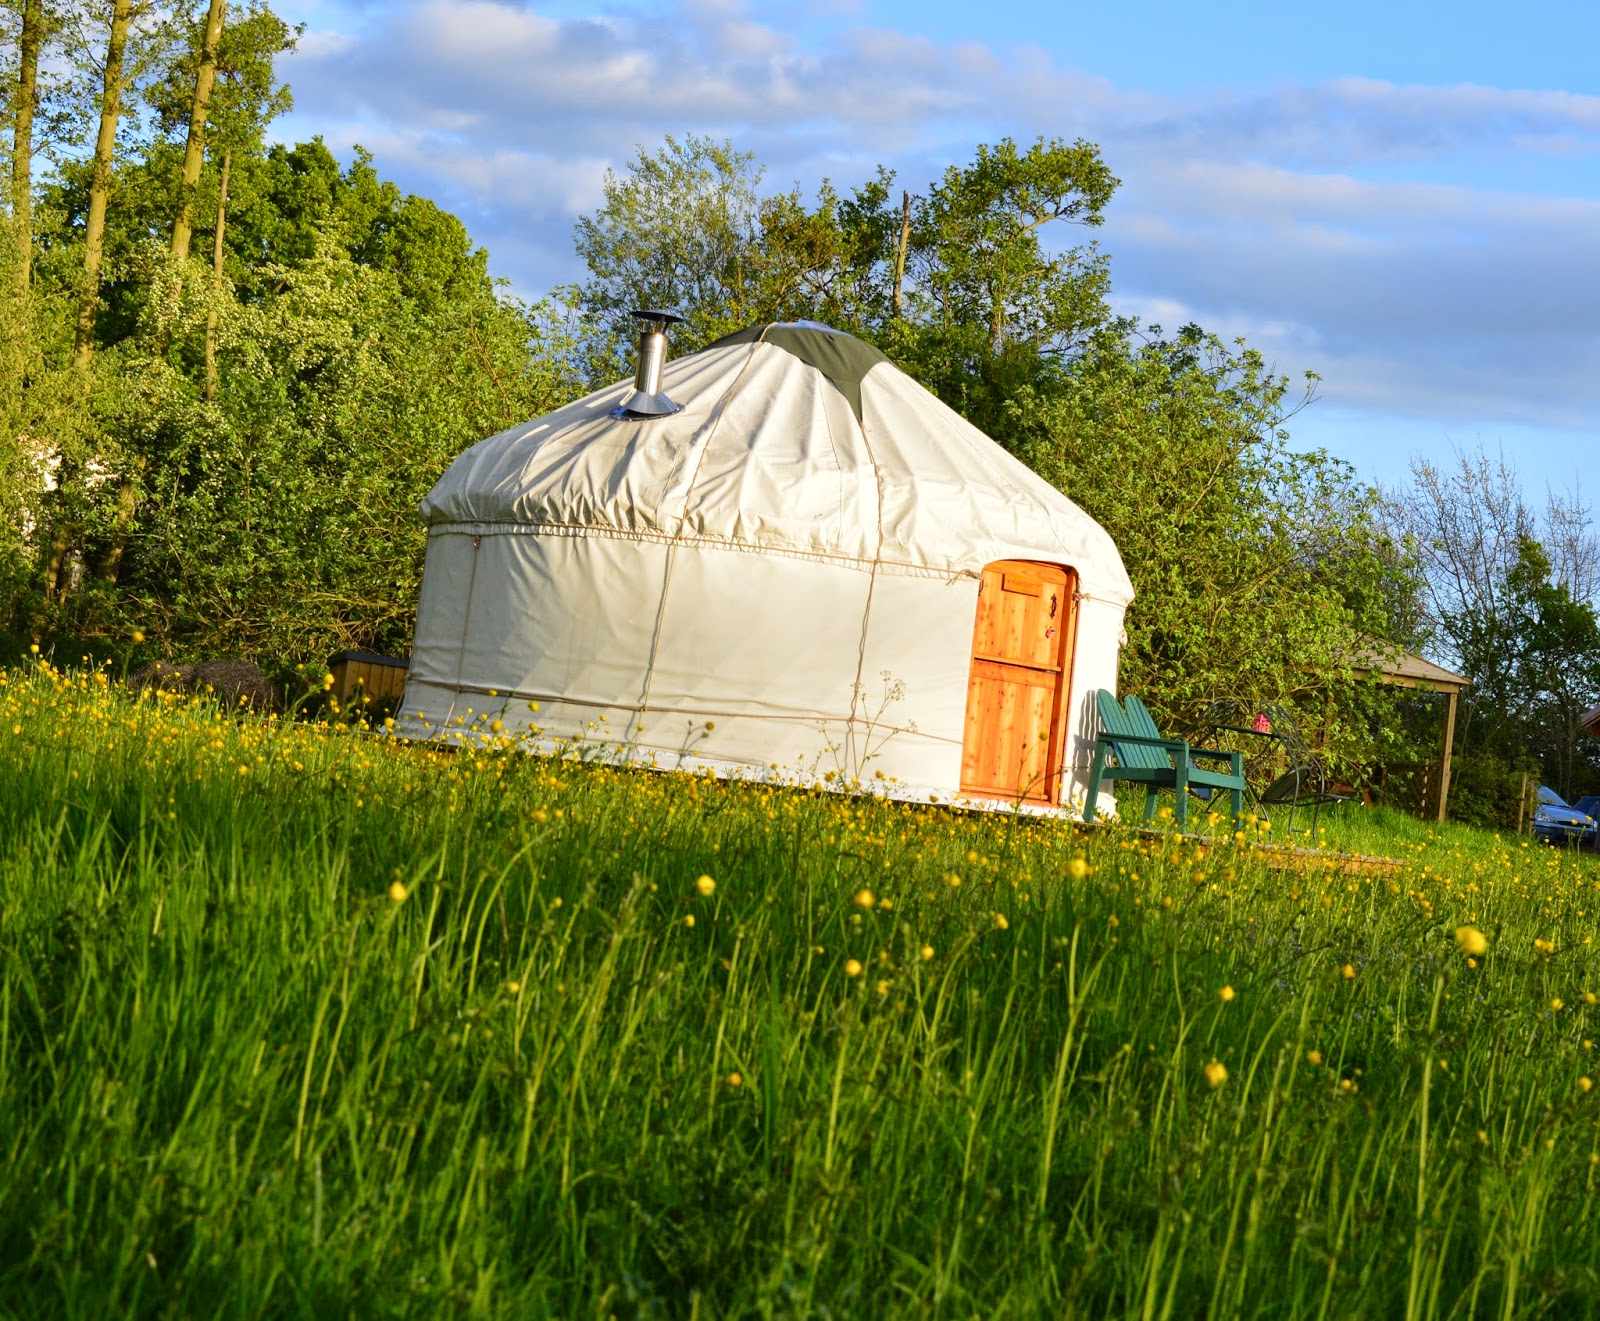 Acorn glade glamping in Yorkshire - poppy yurt